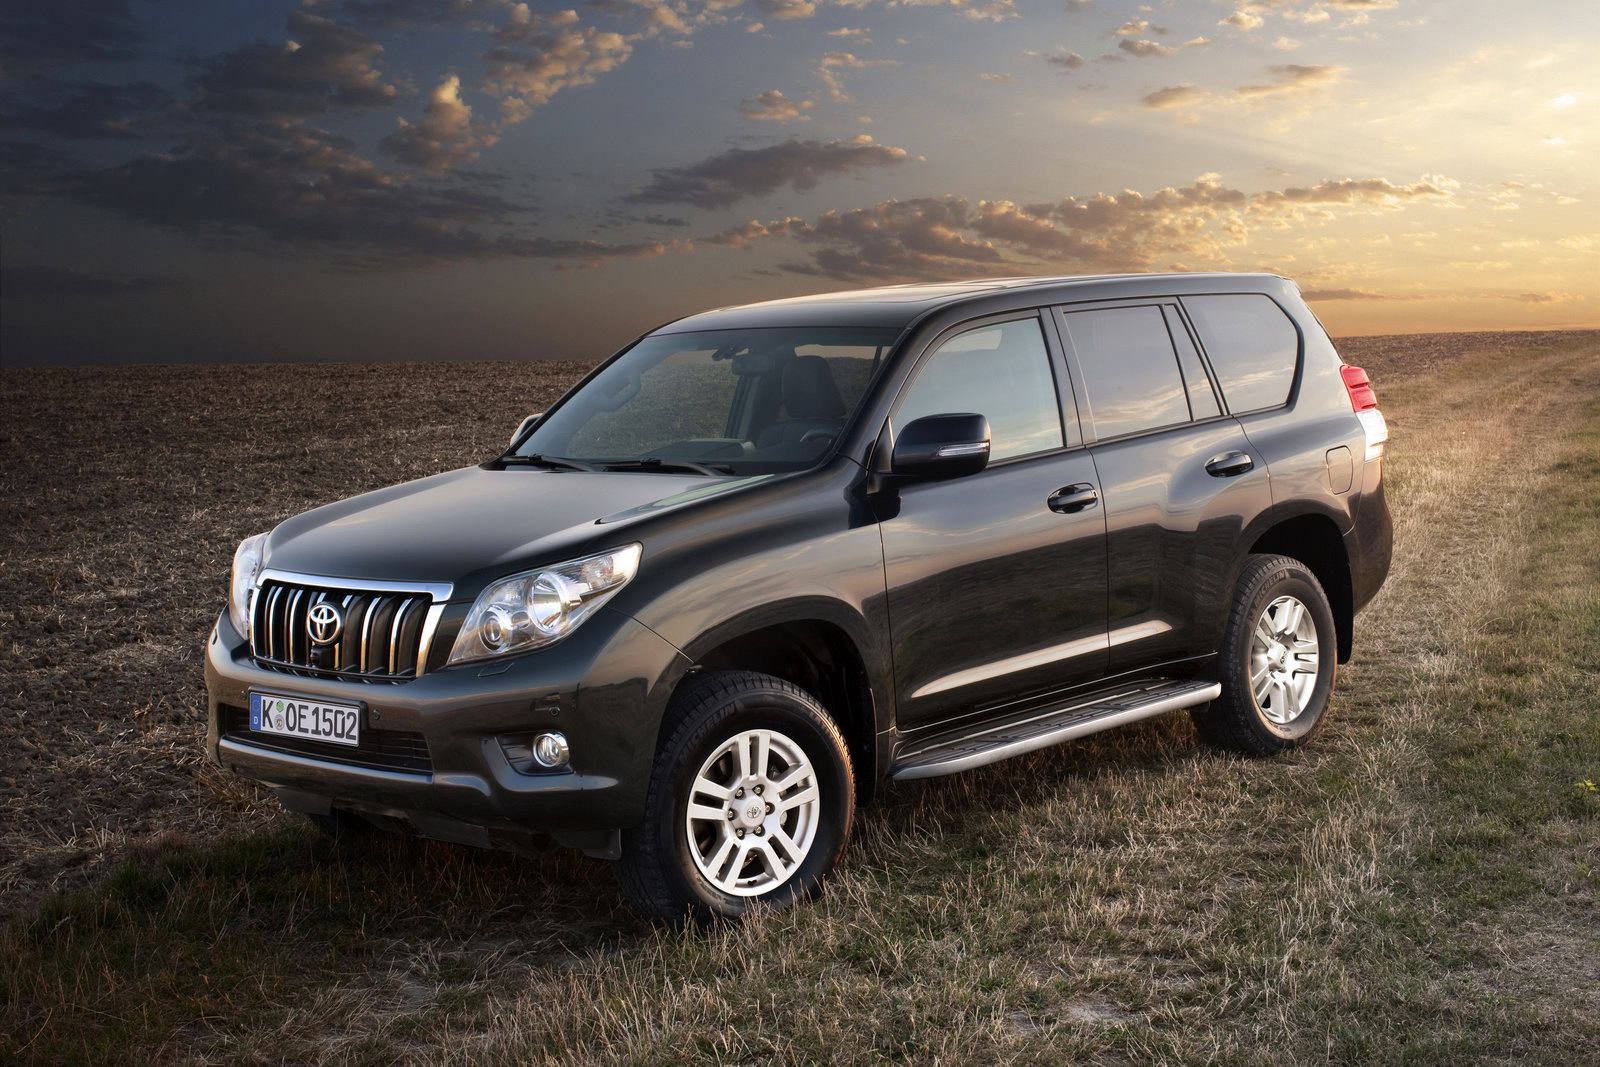 car-model-2012: Toyota Land Cruiser